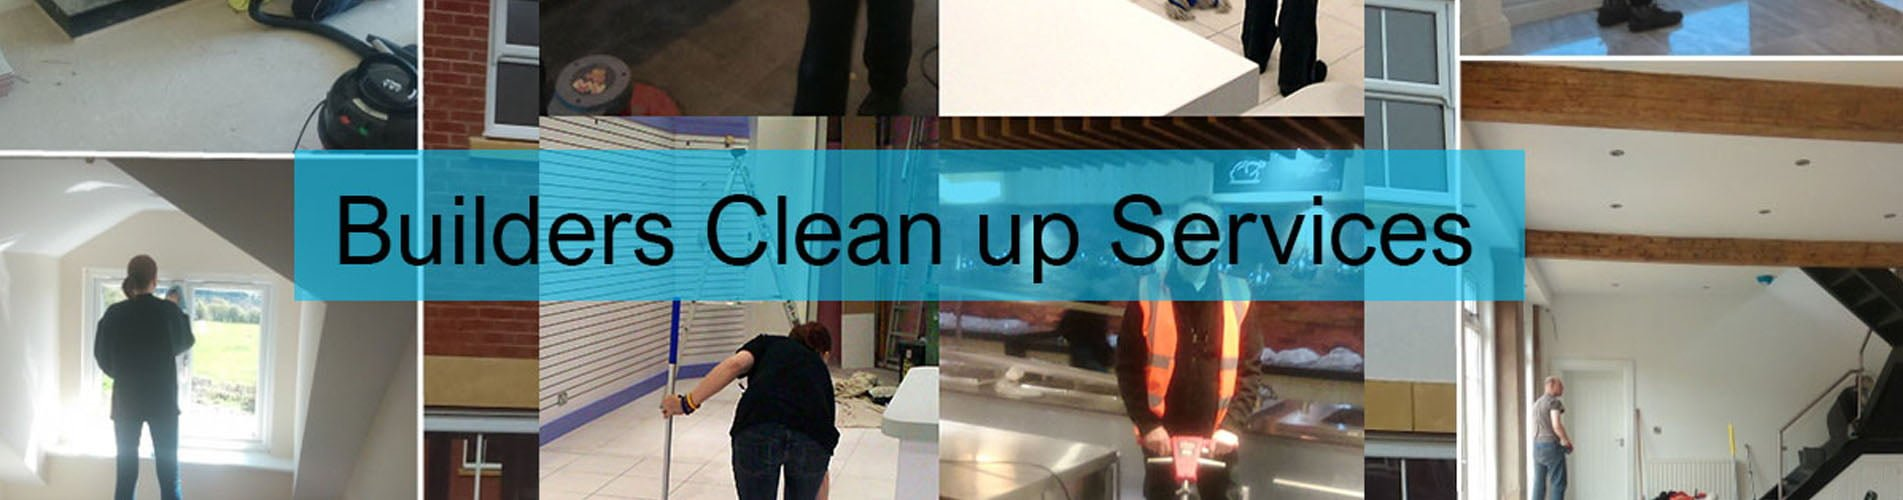 Construction builders cleaning